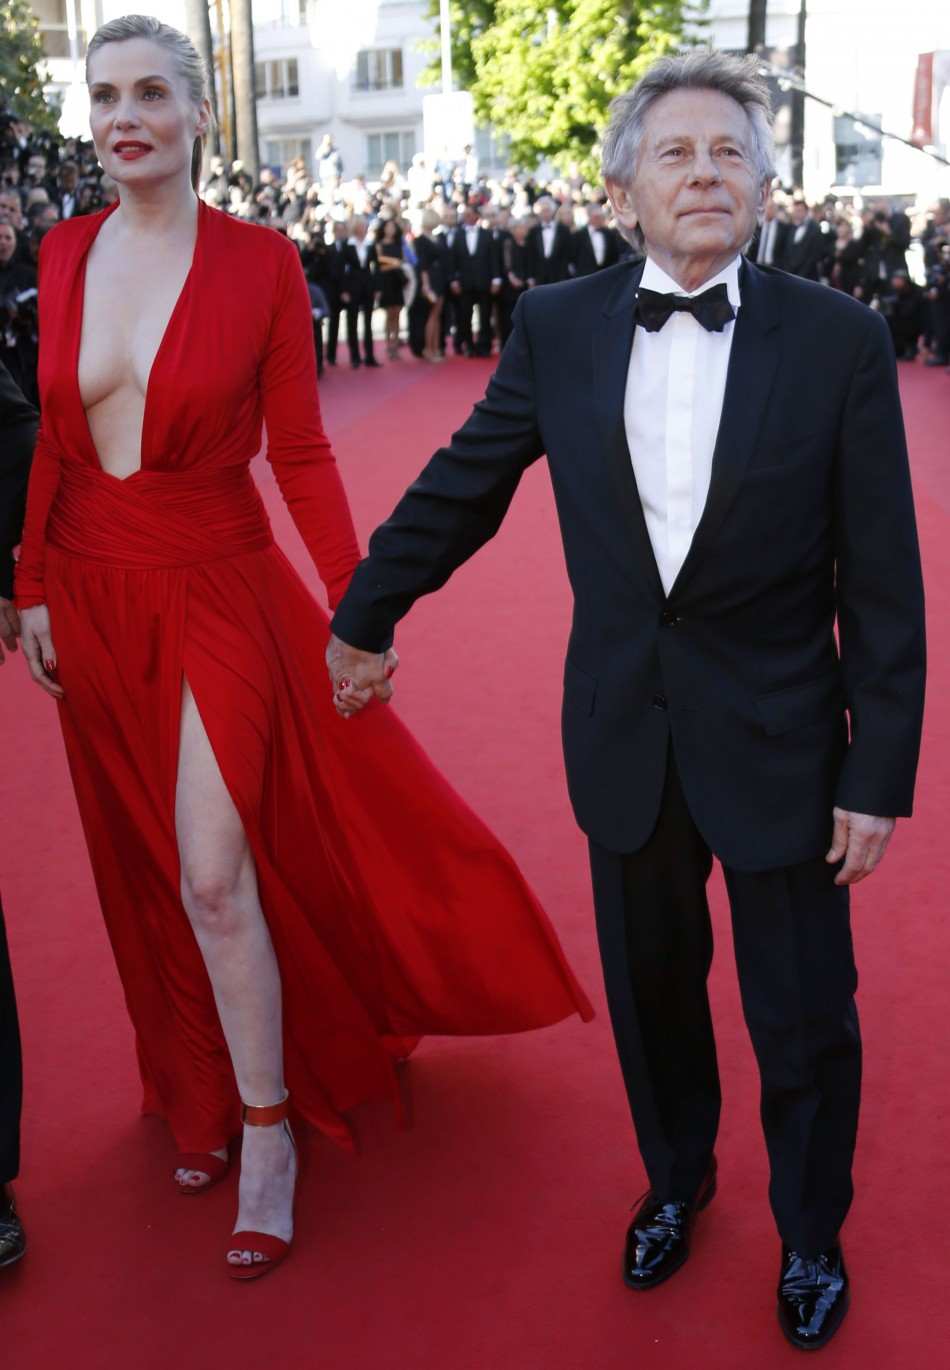 Director Roman Polanski R poses with his wife and cast member Emmanuelle Seigner R on the red carpet as they arrive for the screening of the film La Venus a la Fourrure Venus in Fur in competition during the 66th Cannes Film Festival in